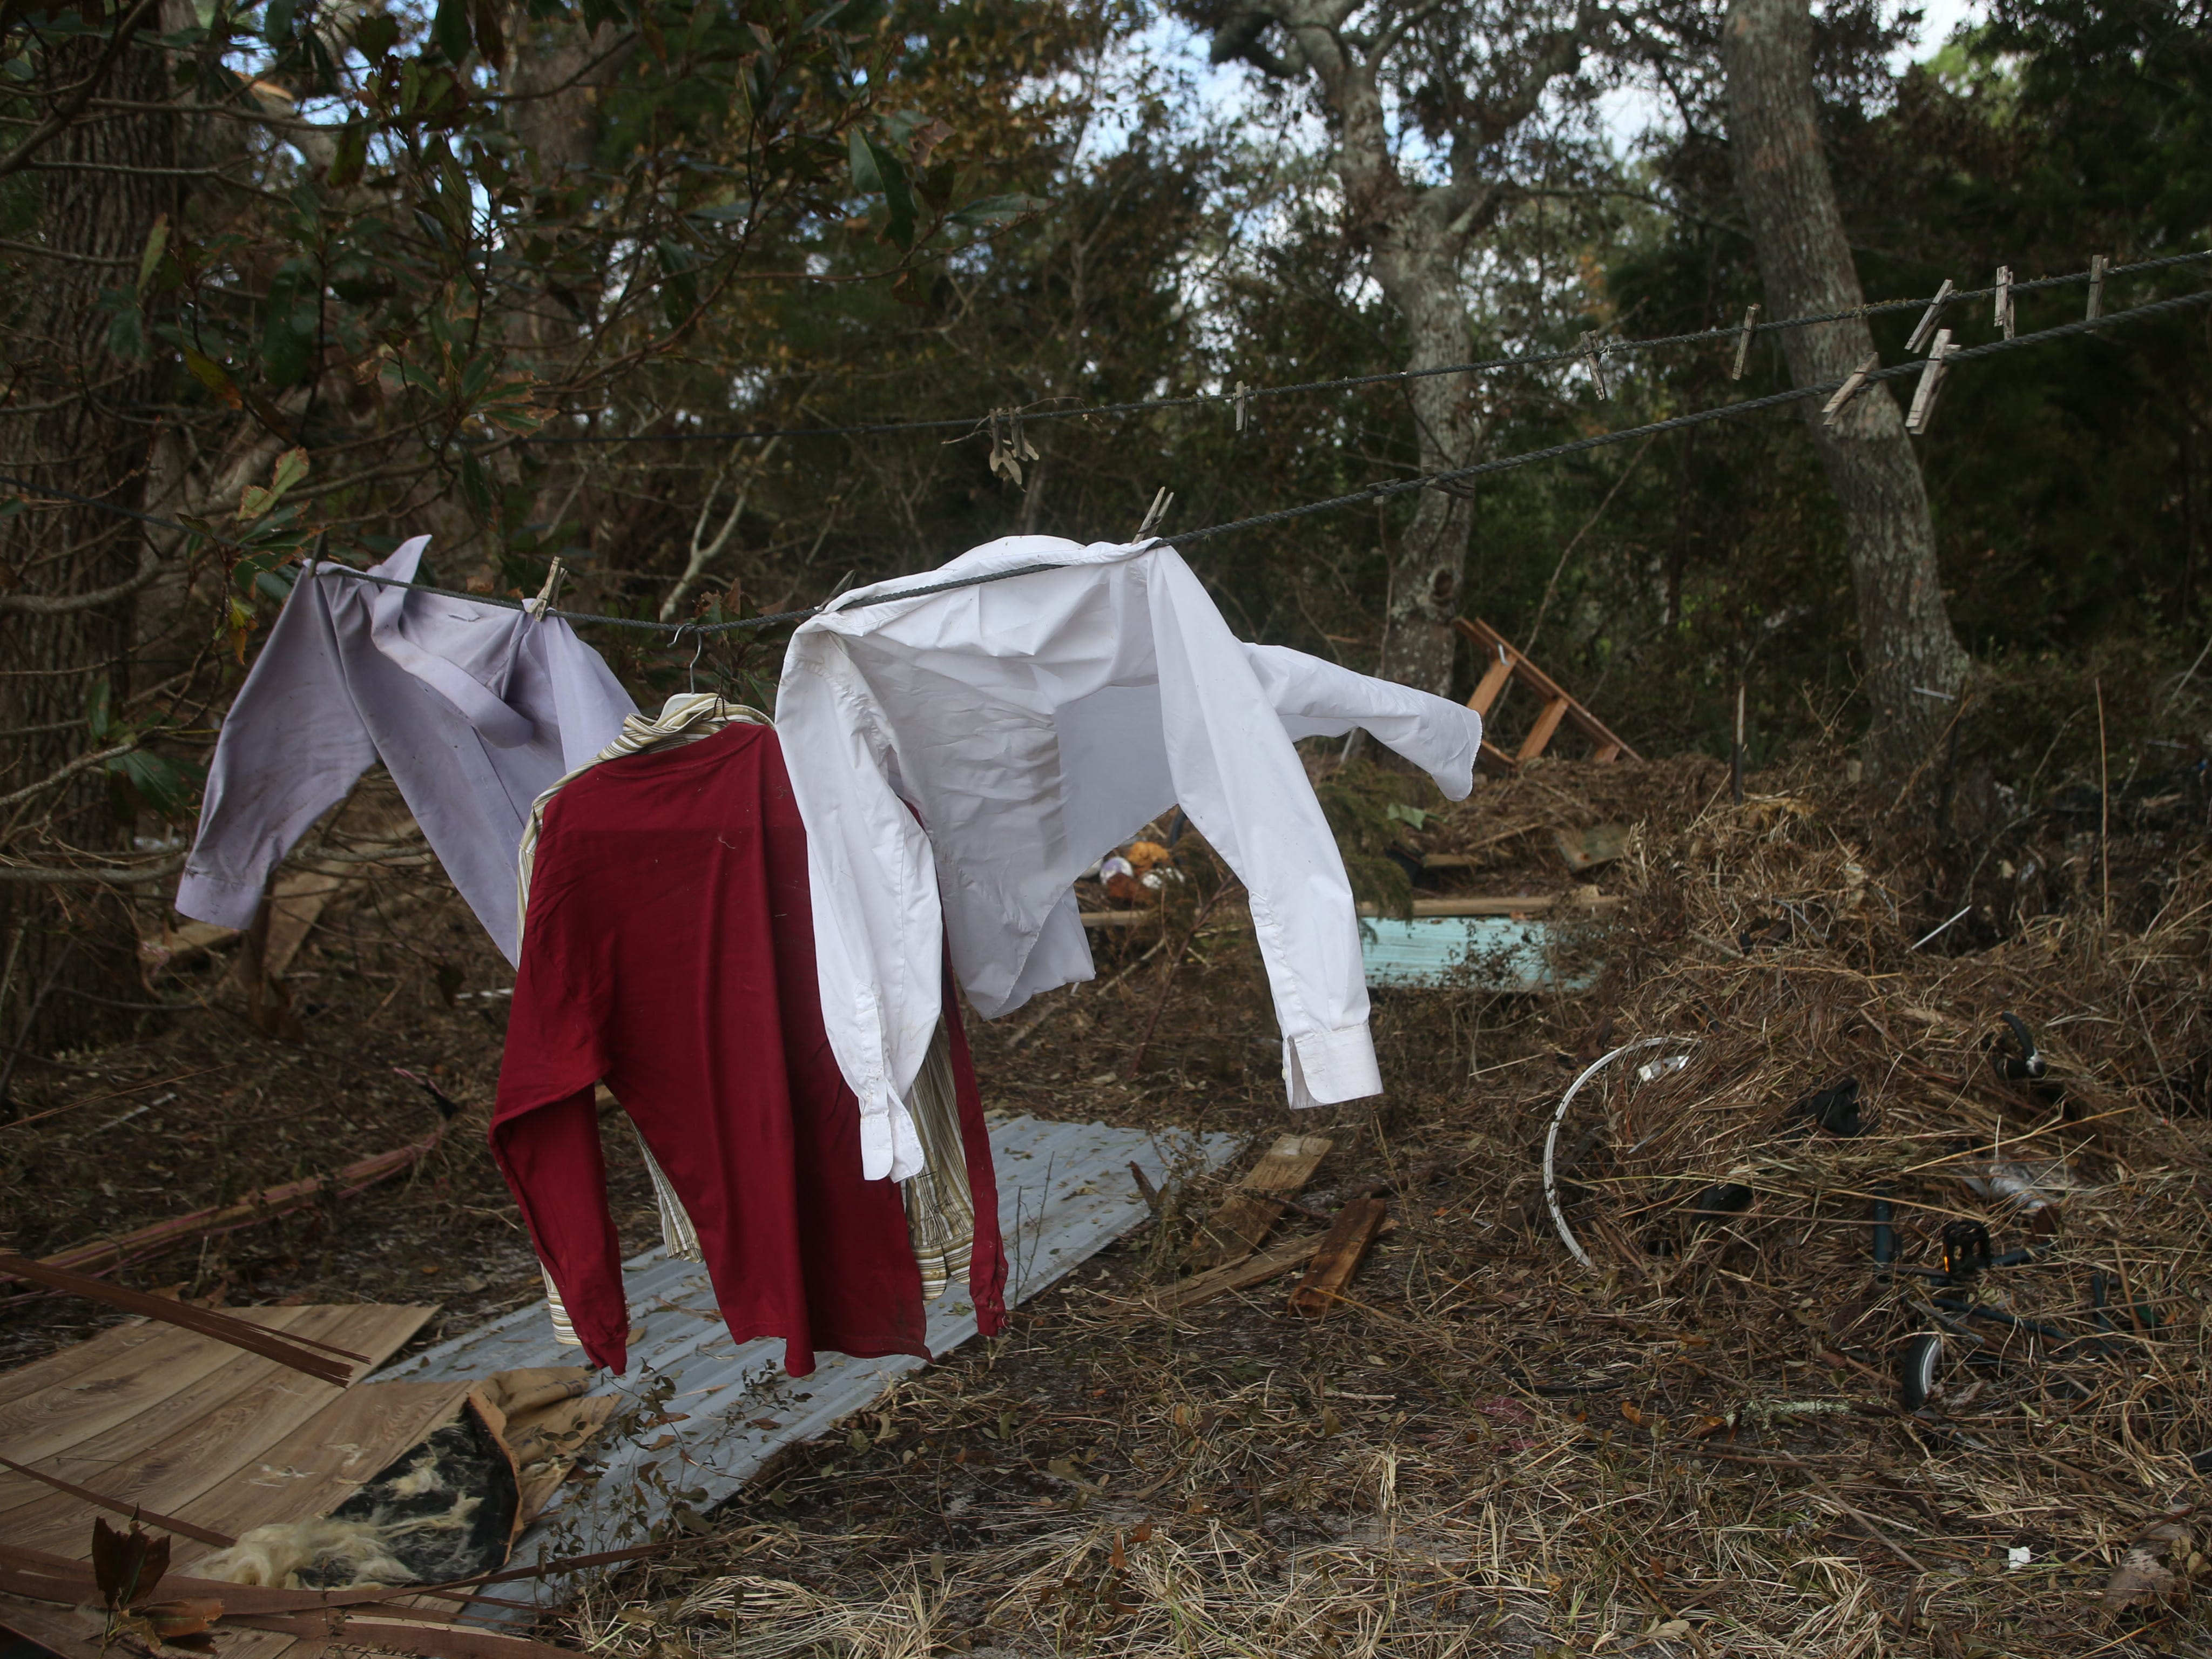 A clothesline swings in the wind and debris litters the ground in Lanark, Fla. after Hurricane Michael on Monday, Oct. 15, 2018.